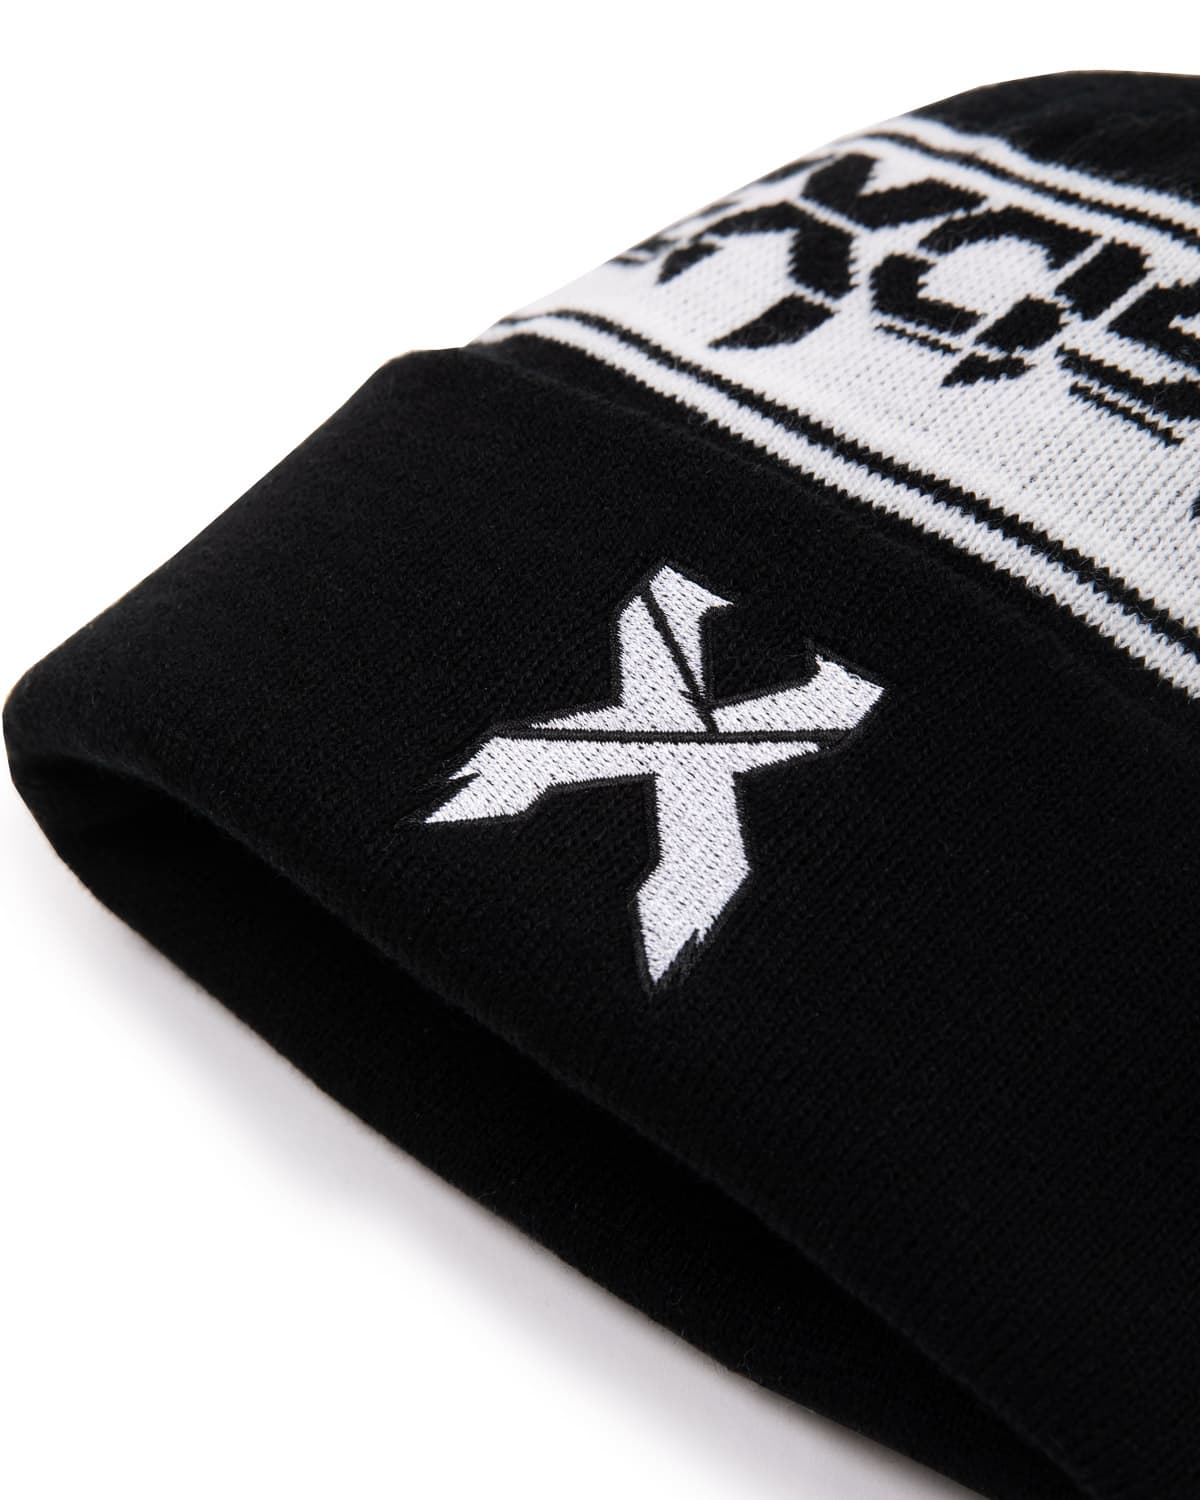 Excision 'Sliced' Pom Beanie